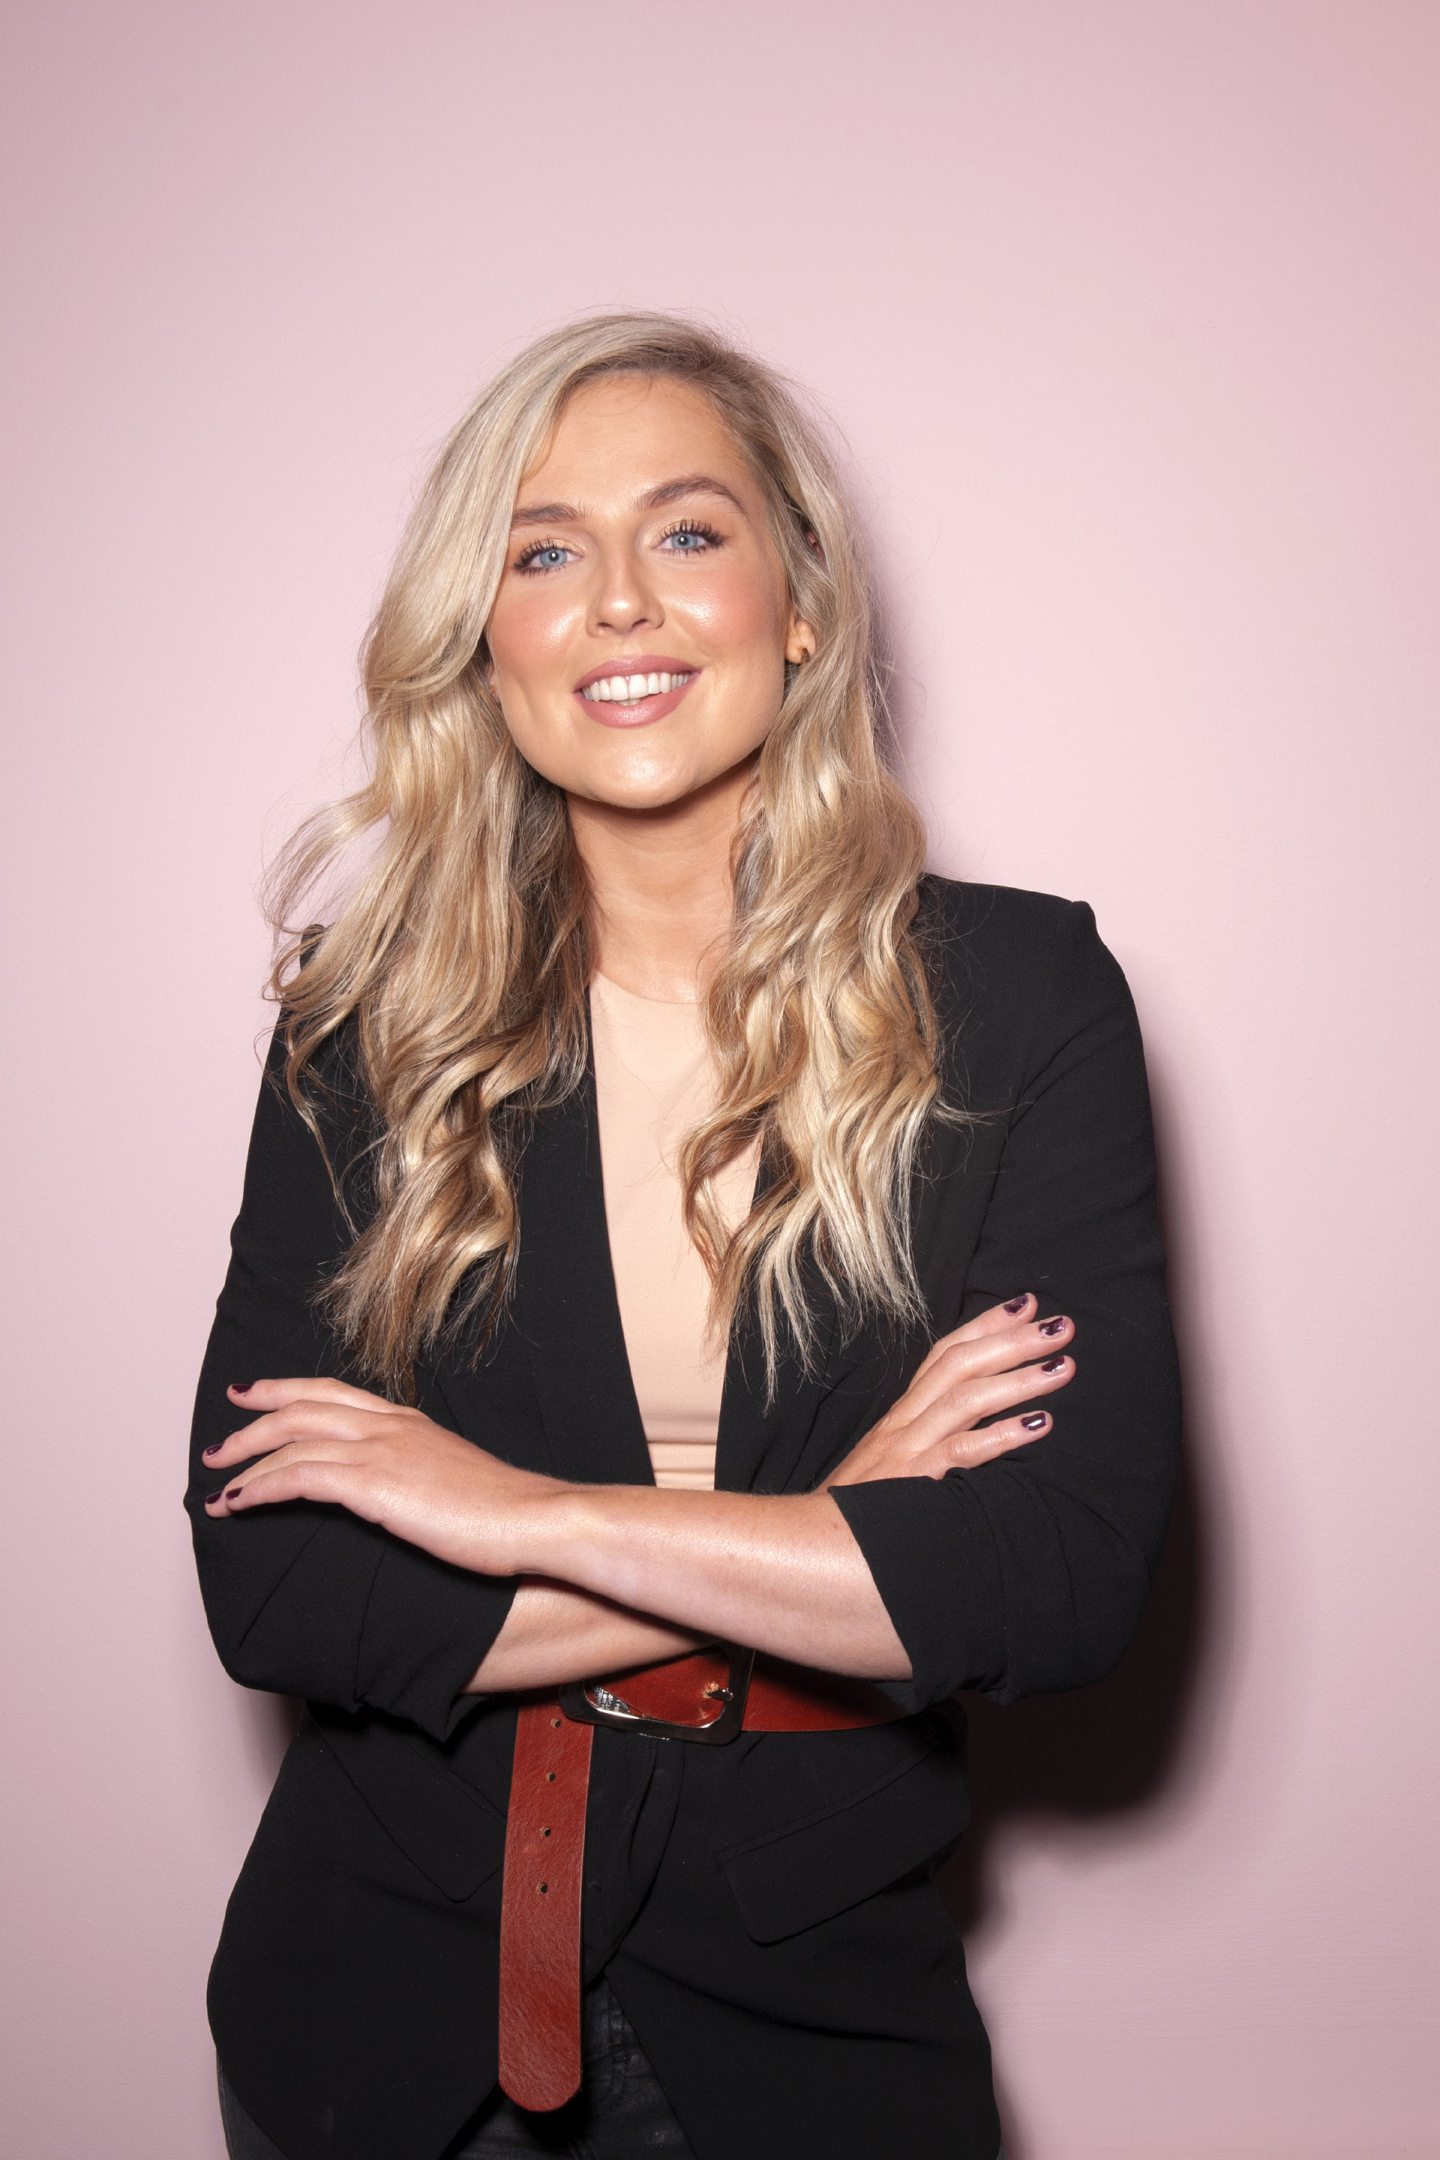 Aimee Connolly, make-up artist and founder of Sculpted by Aimee